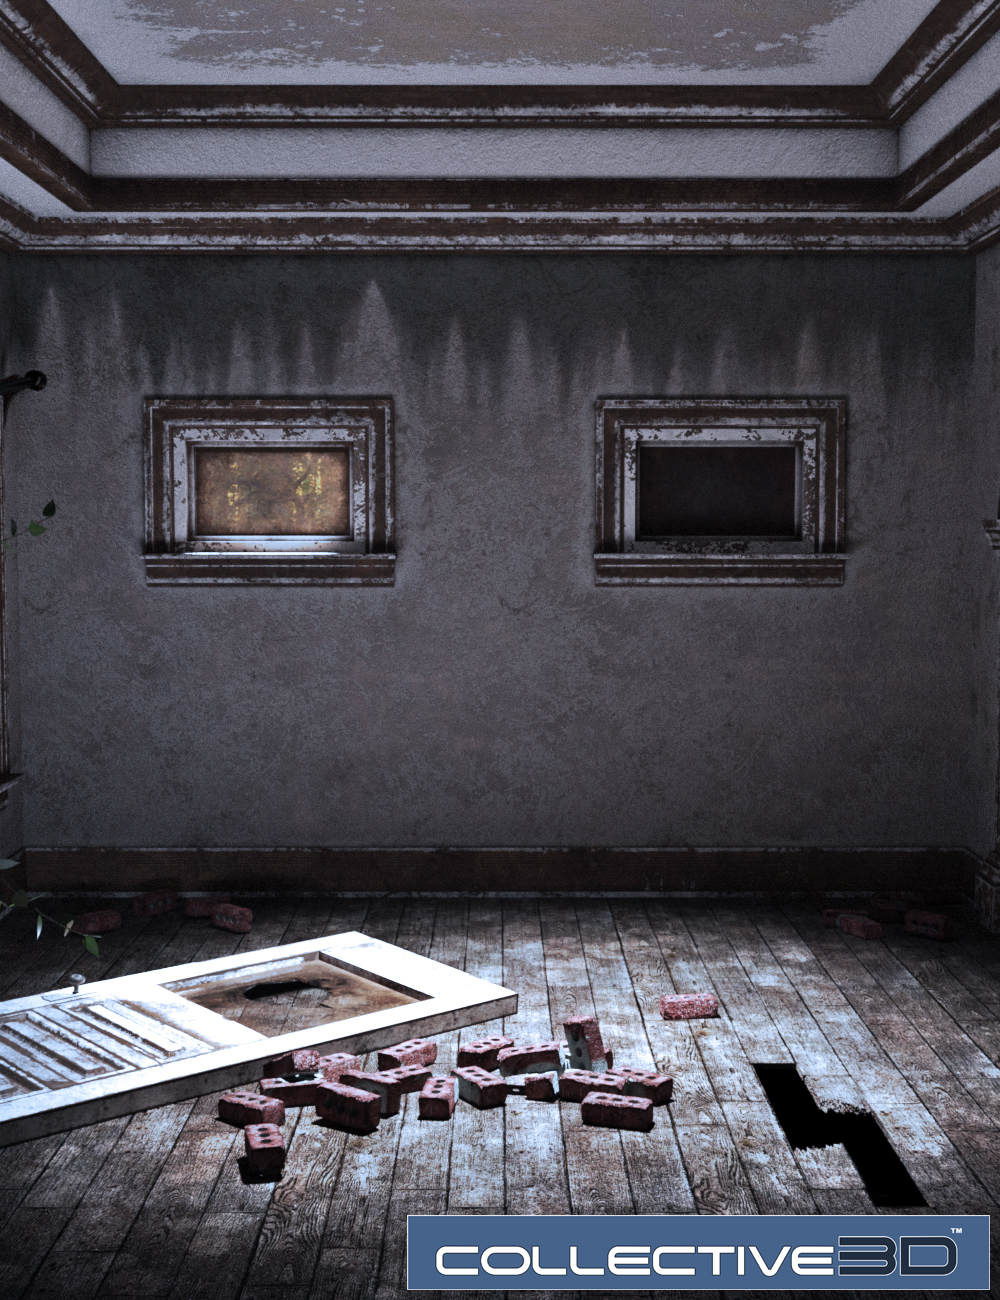 Collective3d Movie Sets Haunted Interior by: Collective3d, 3D Models by Daz 3D